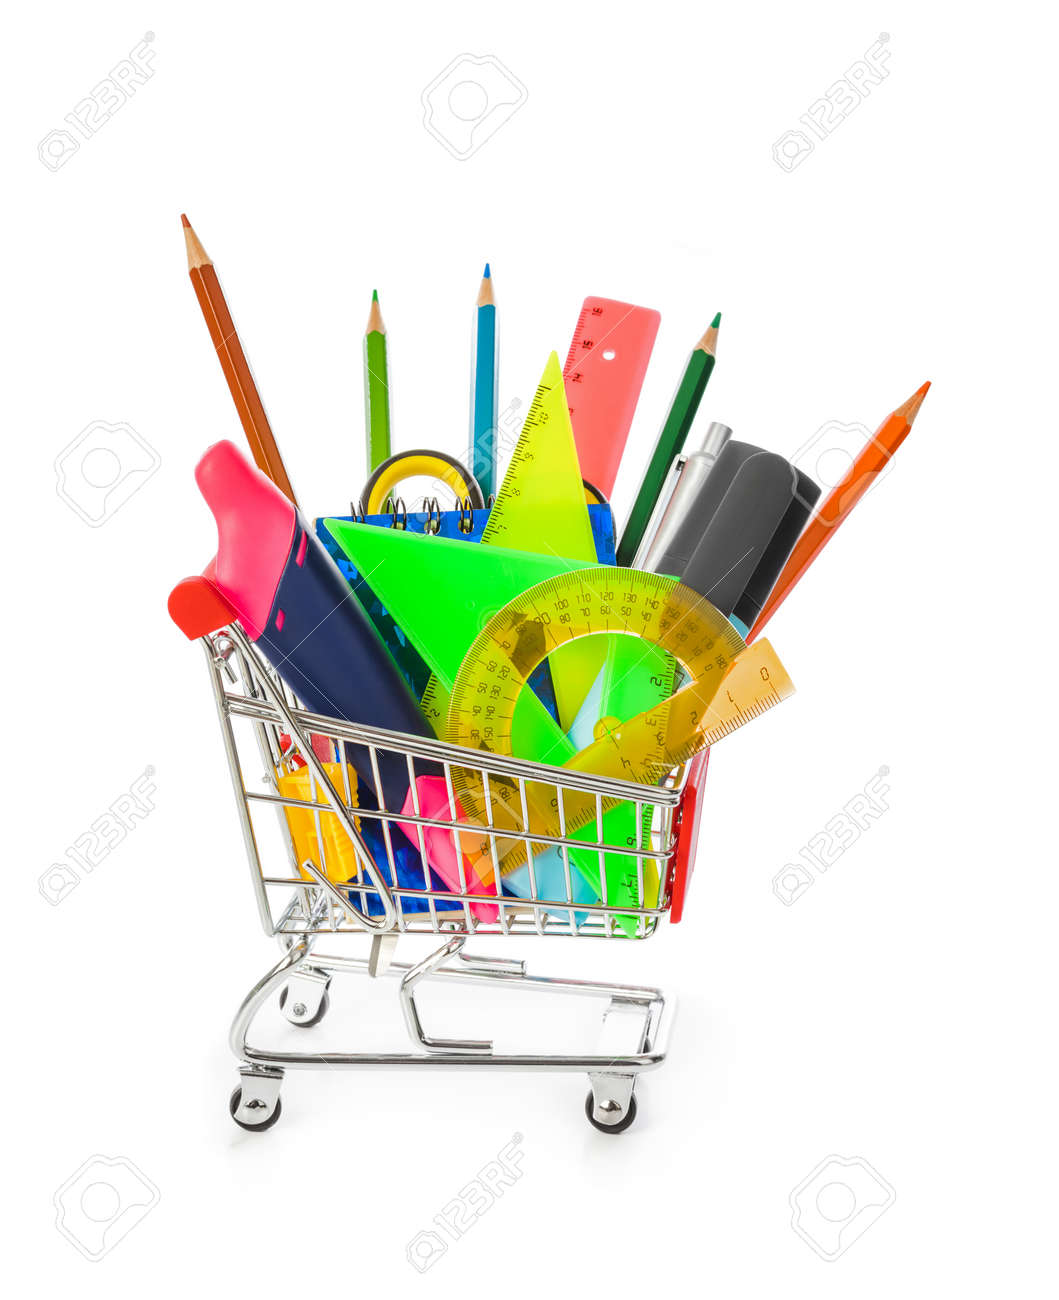 Stationery in shopping cart isolated on white background - 120211557